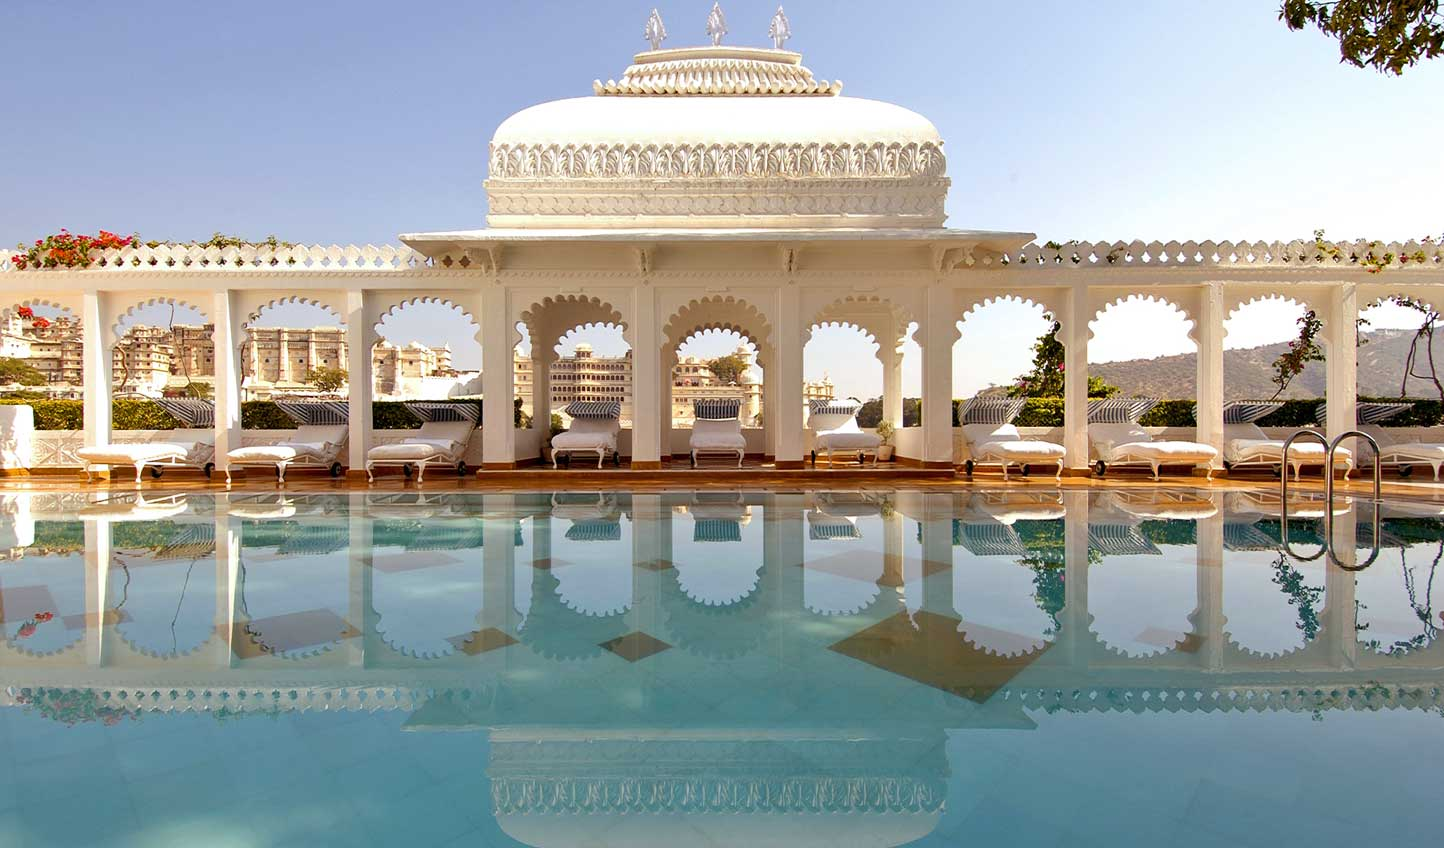 Enjoy some down time in the lap of luxury at Taj Lake Palace